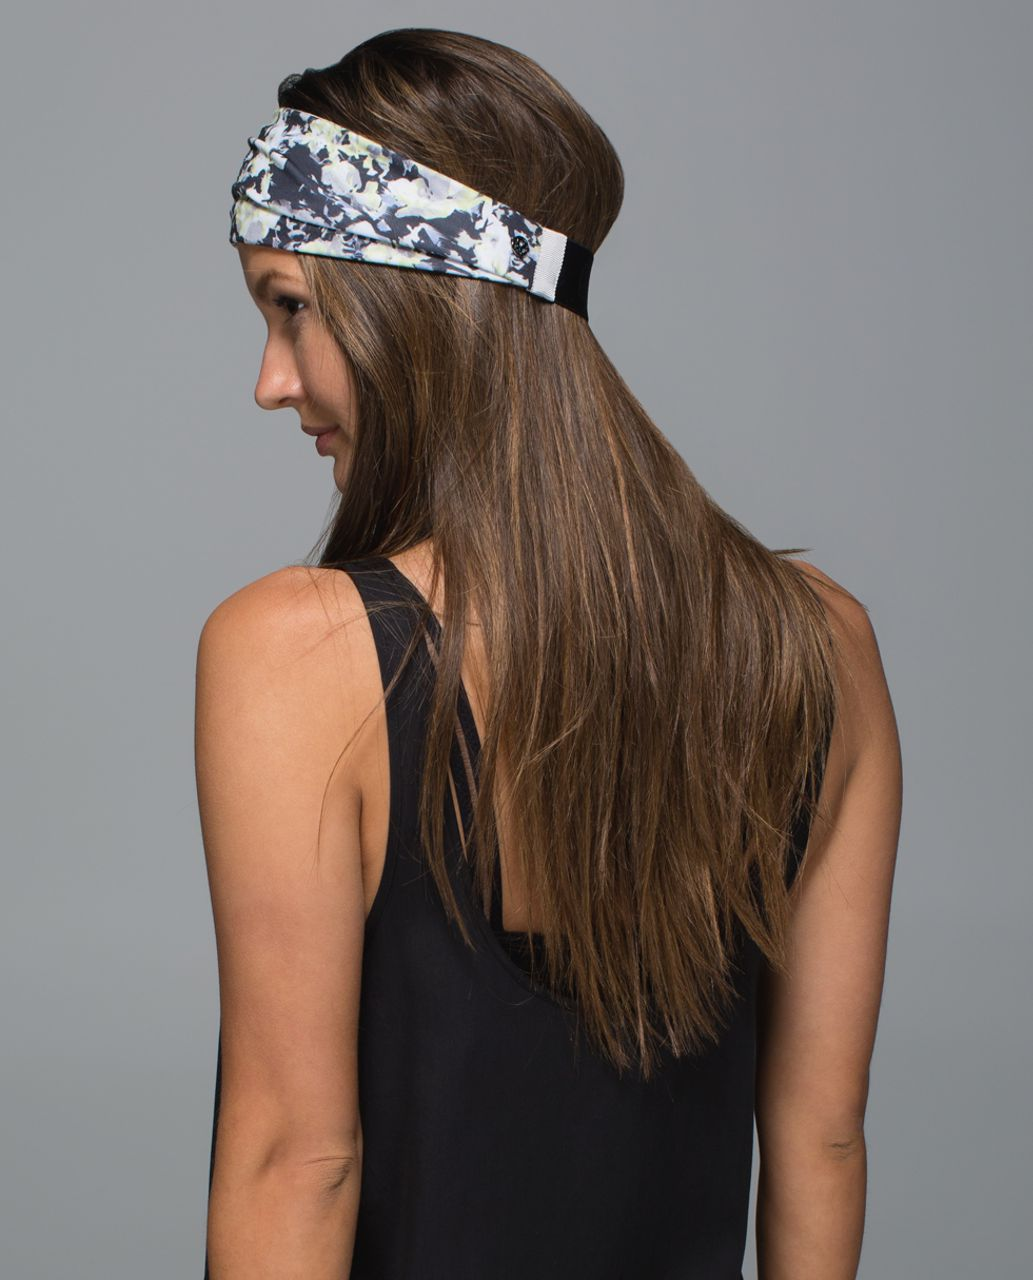 Lululemon Fringe Fighter Headband - Crosscourt Petal Black Clarity Yellow / White